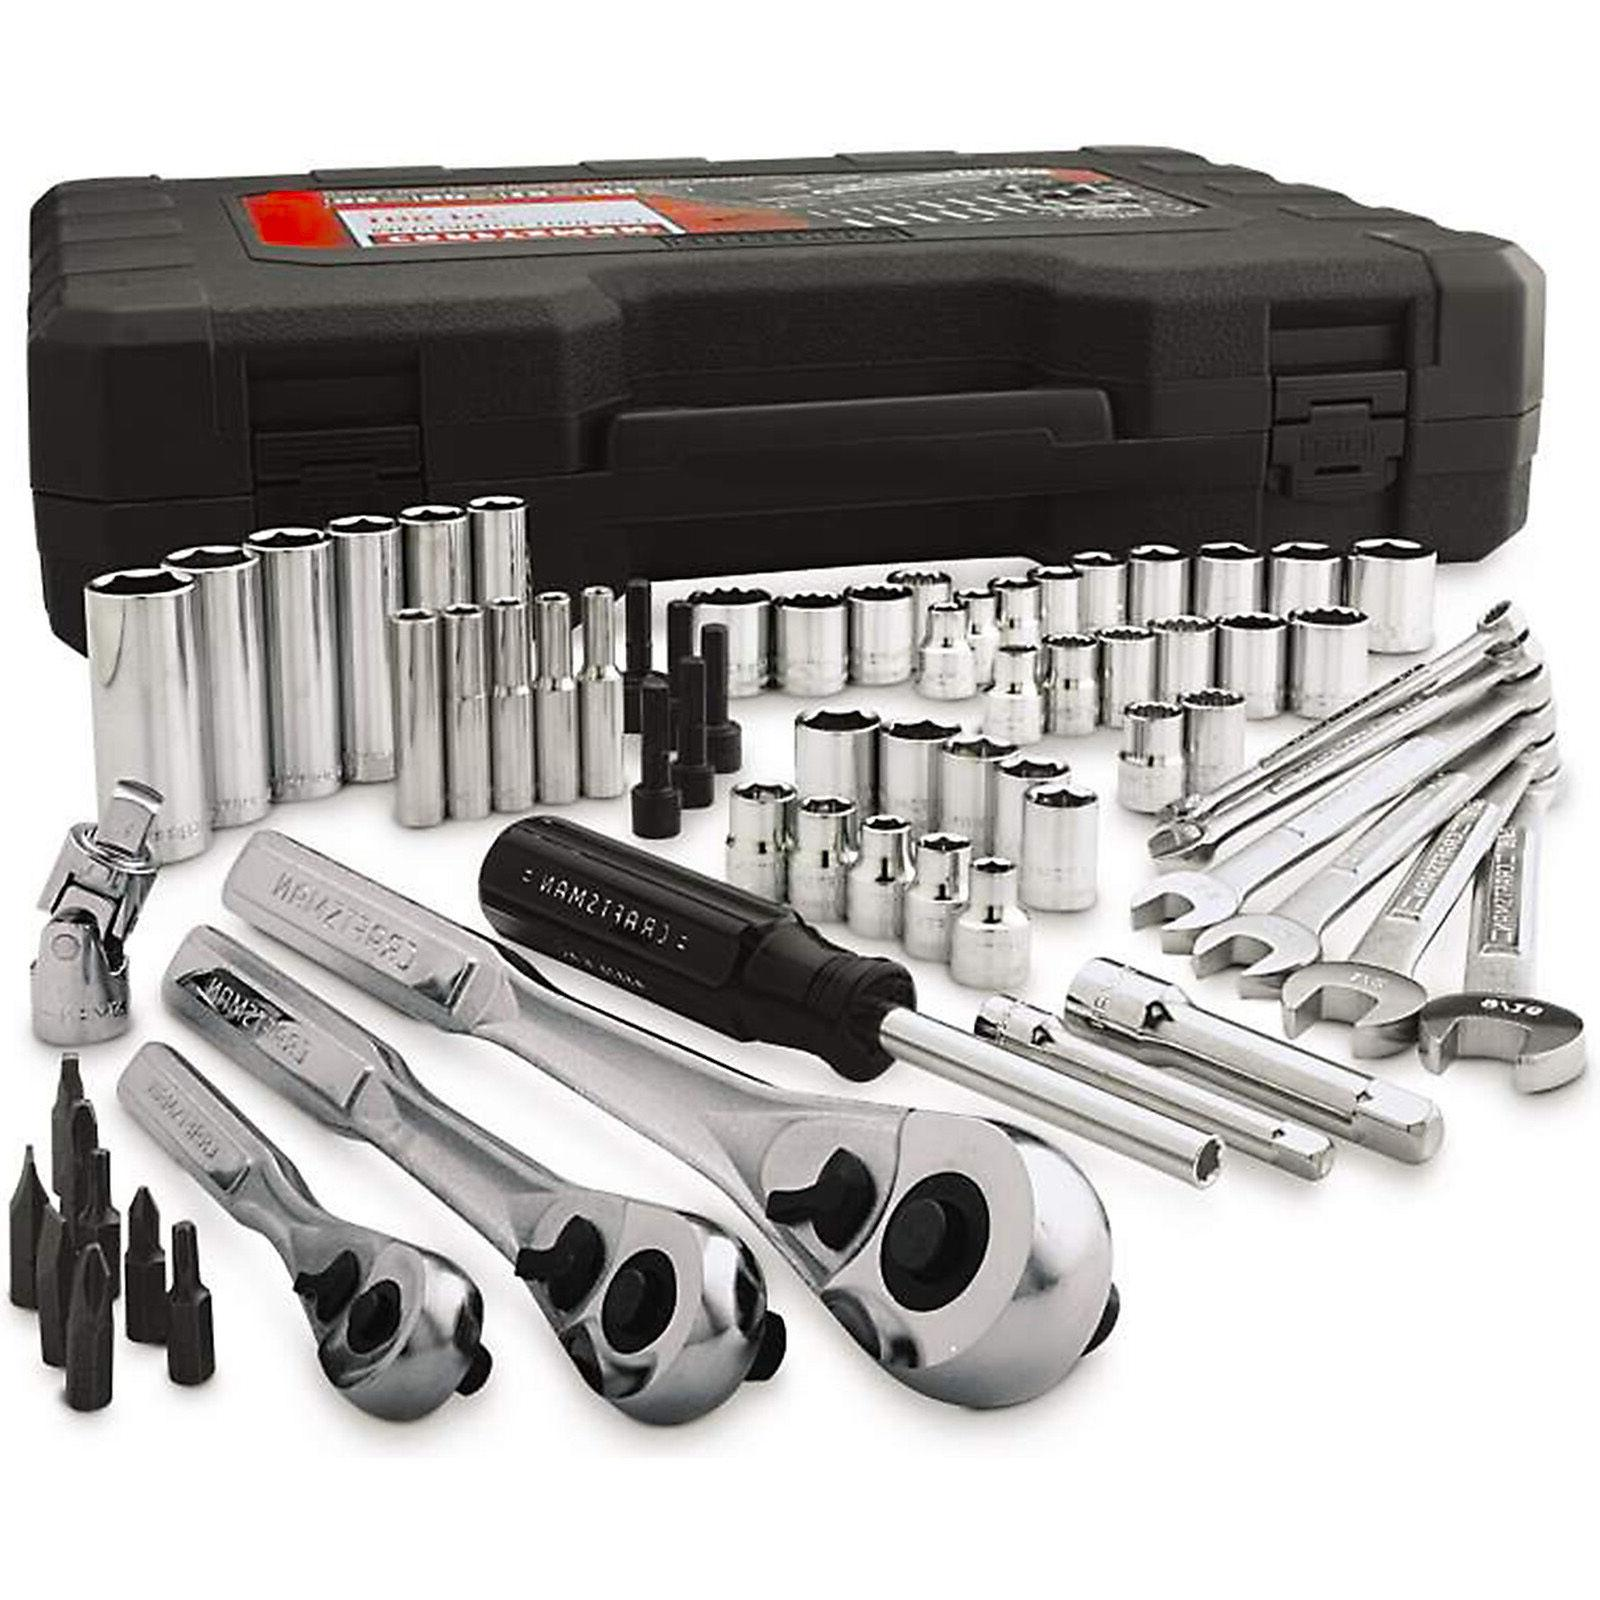 Craftsman Piece pc Mechanics Tool Set Kit Socket